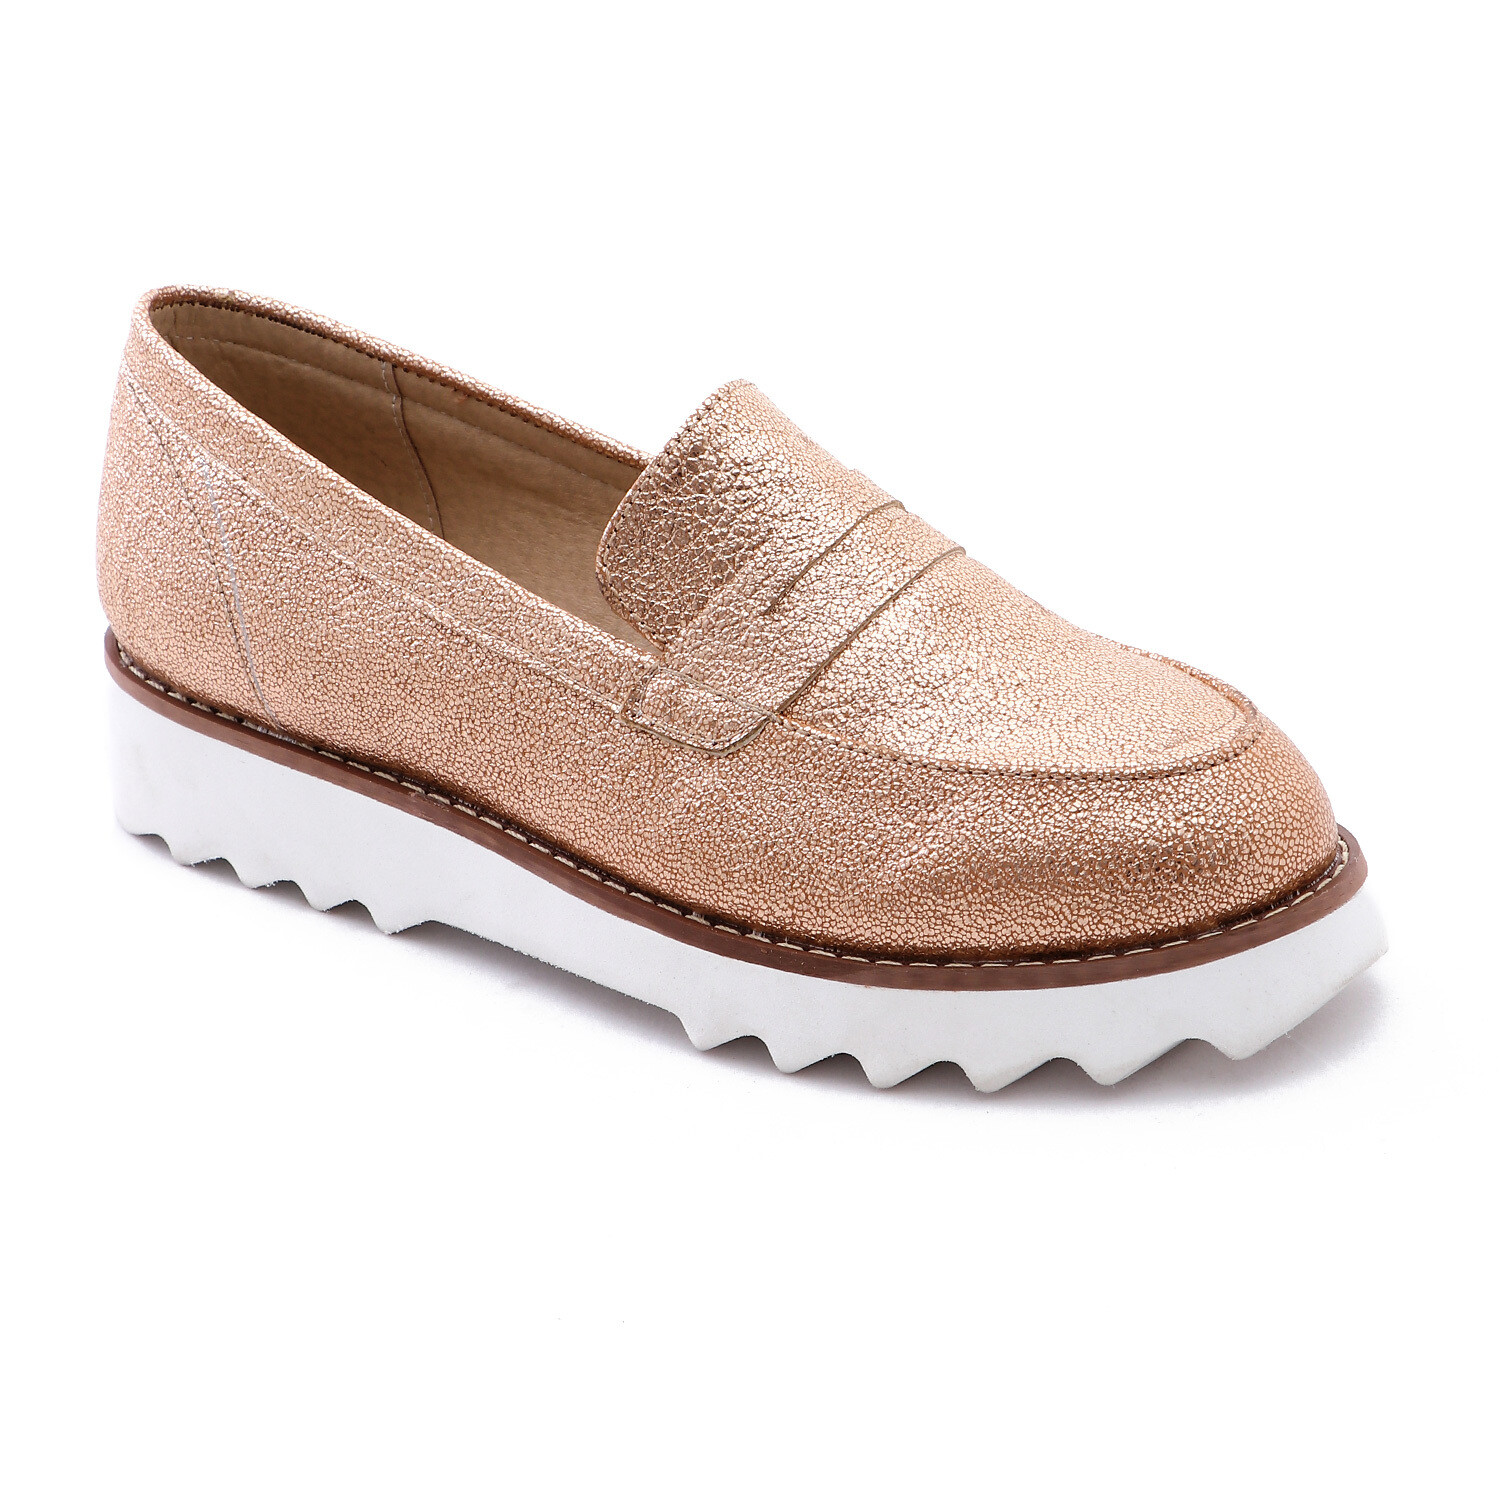 3390 Casual Sneakers - Copper Leather